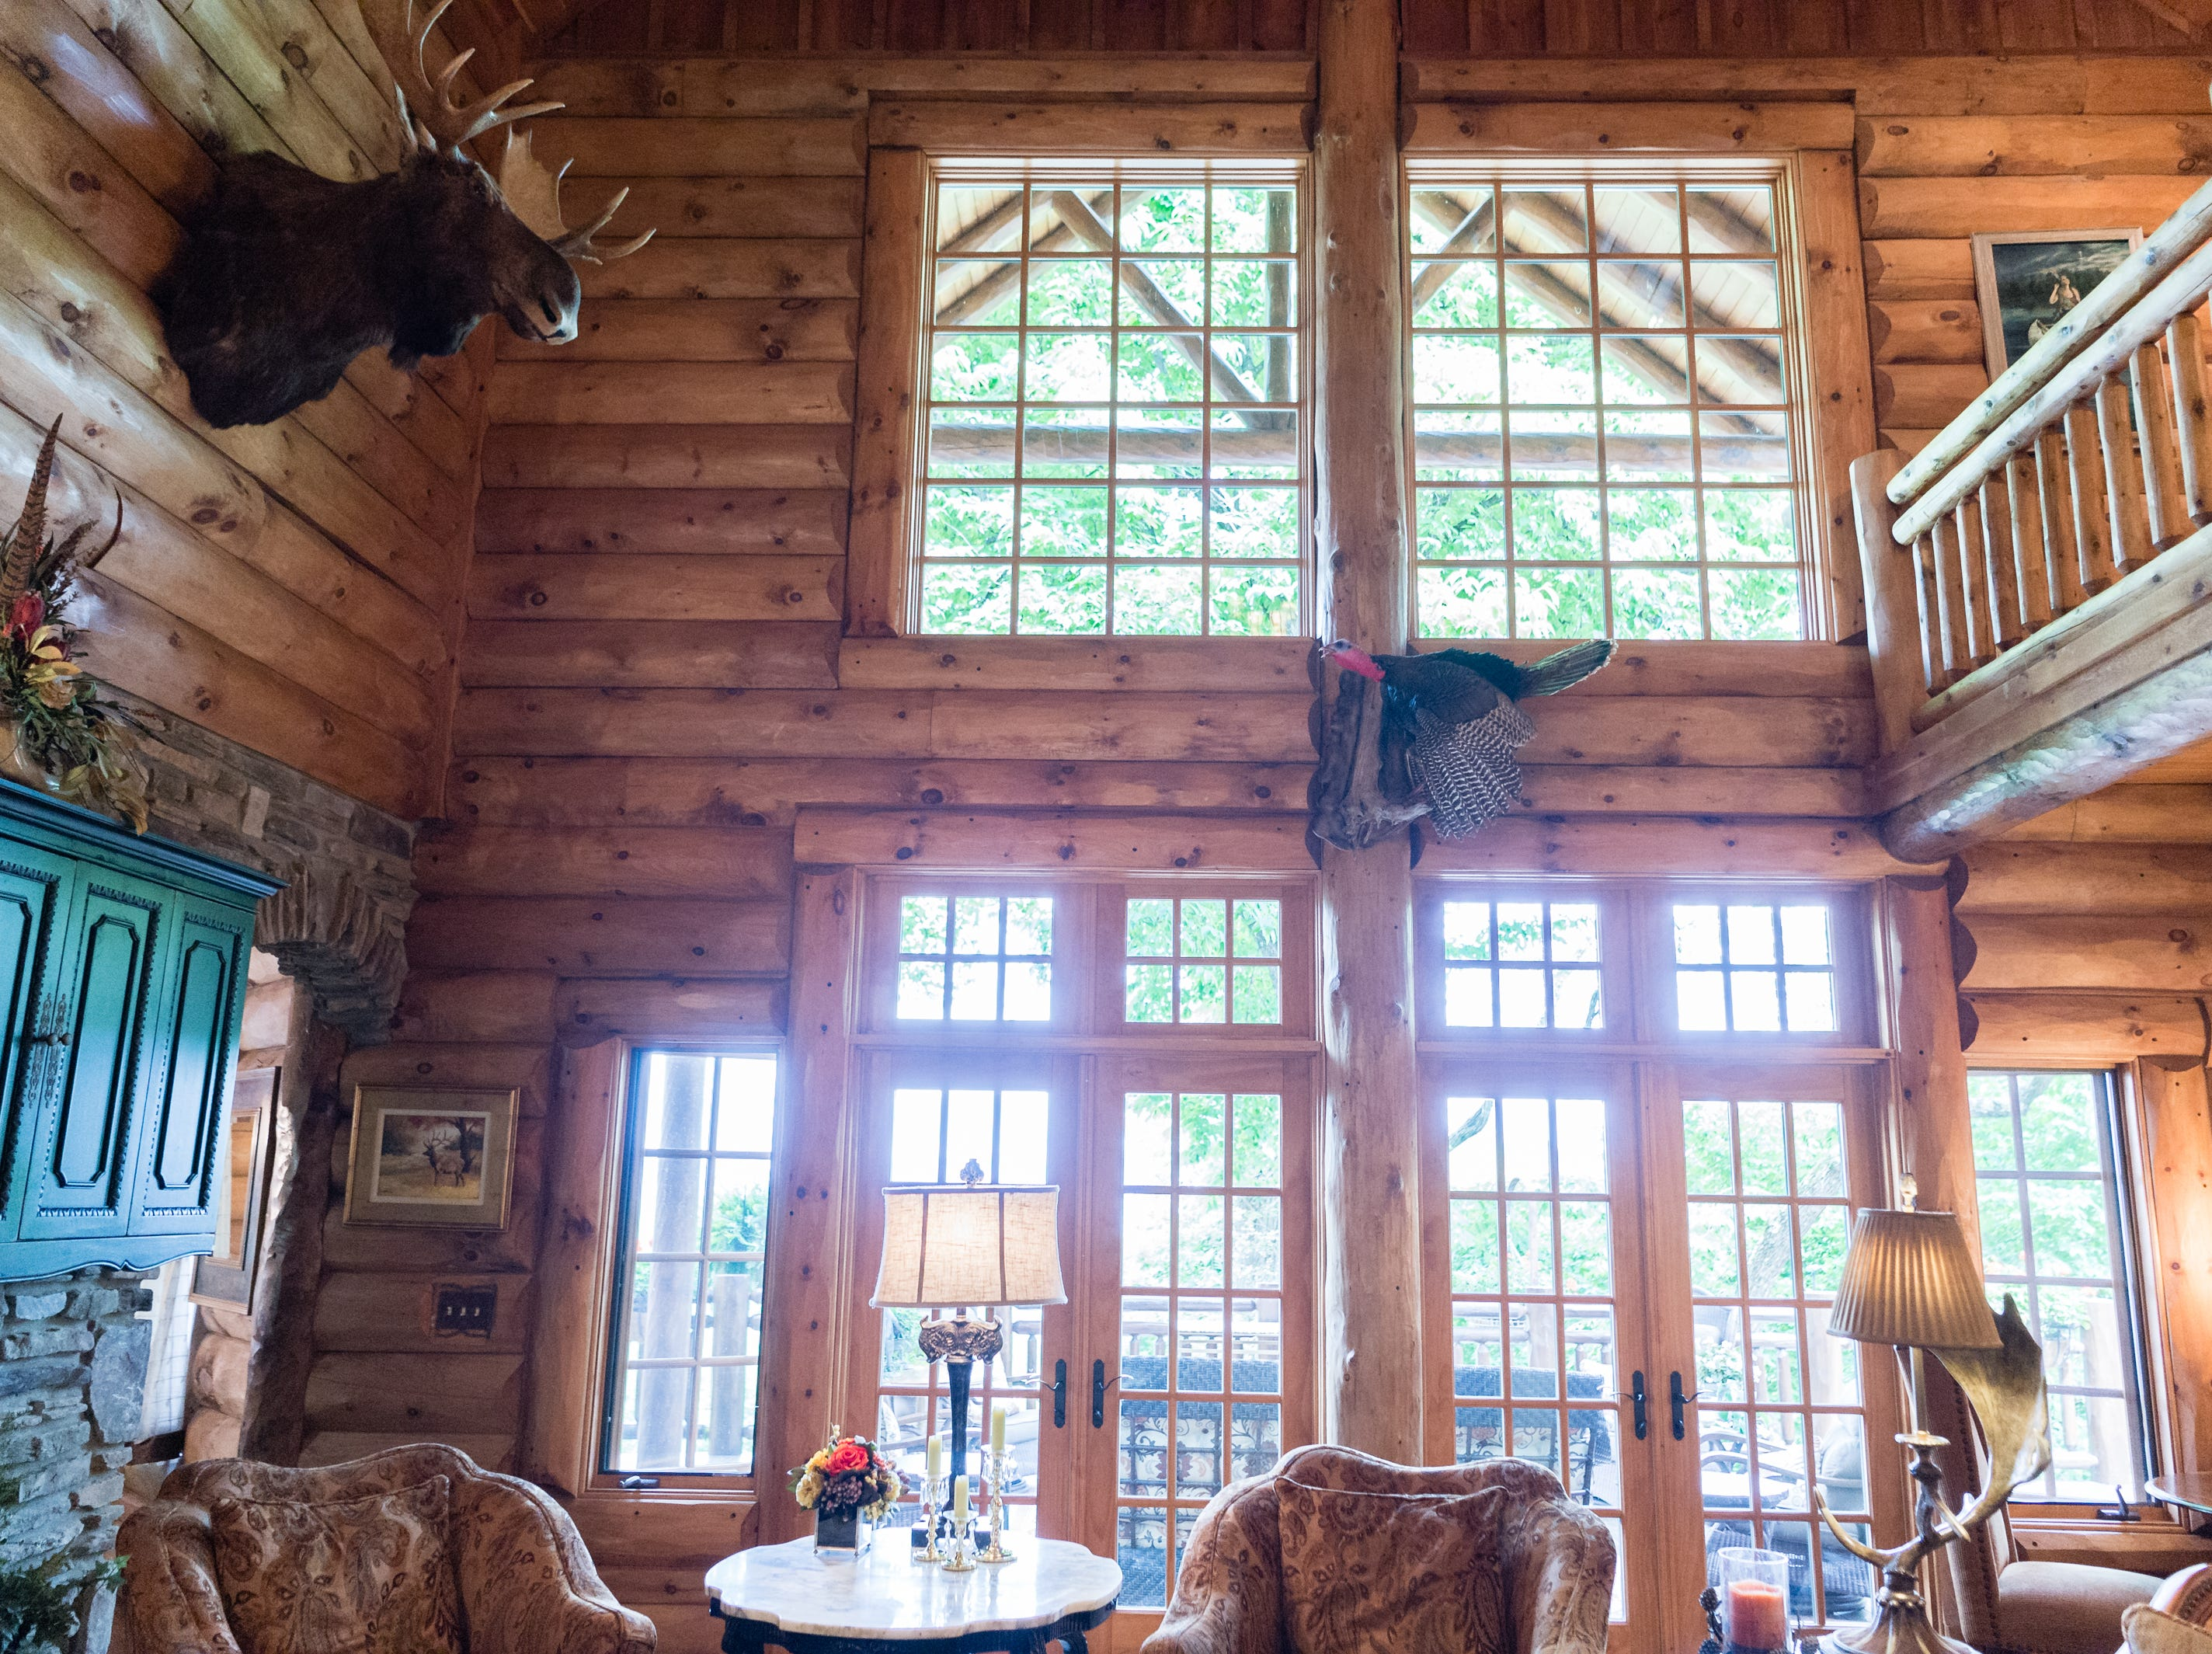 The main great room of Dan and Belle Fangmeyer's log cabin in Waynesville.